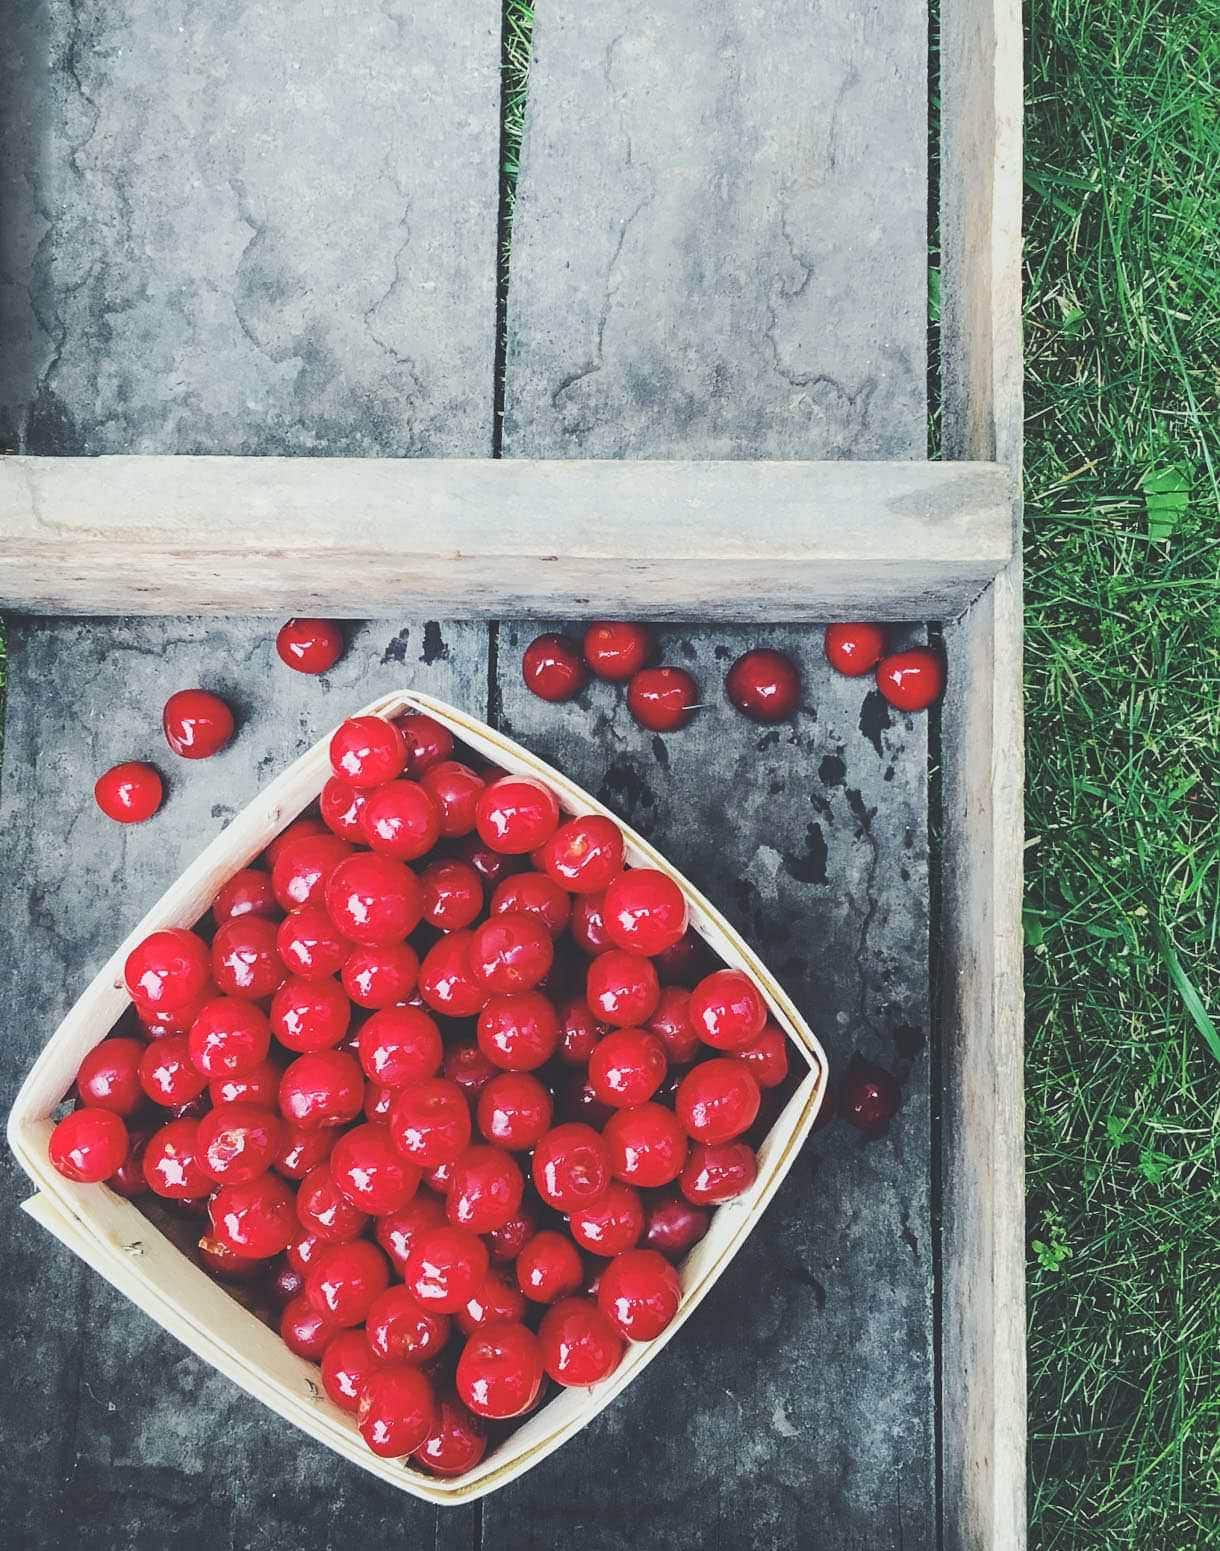 Tart Cherry Picking ~ Traverse City, Michigan